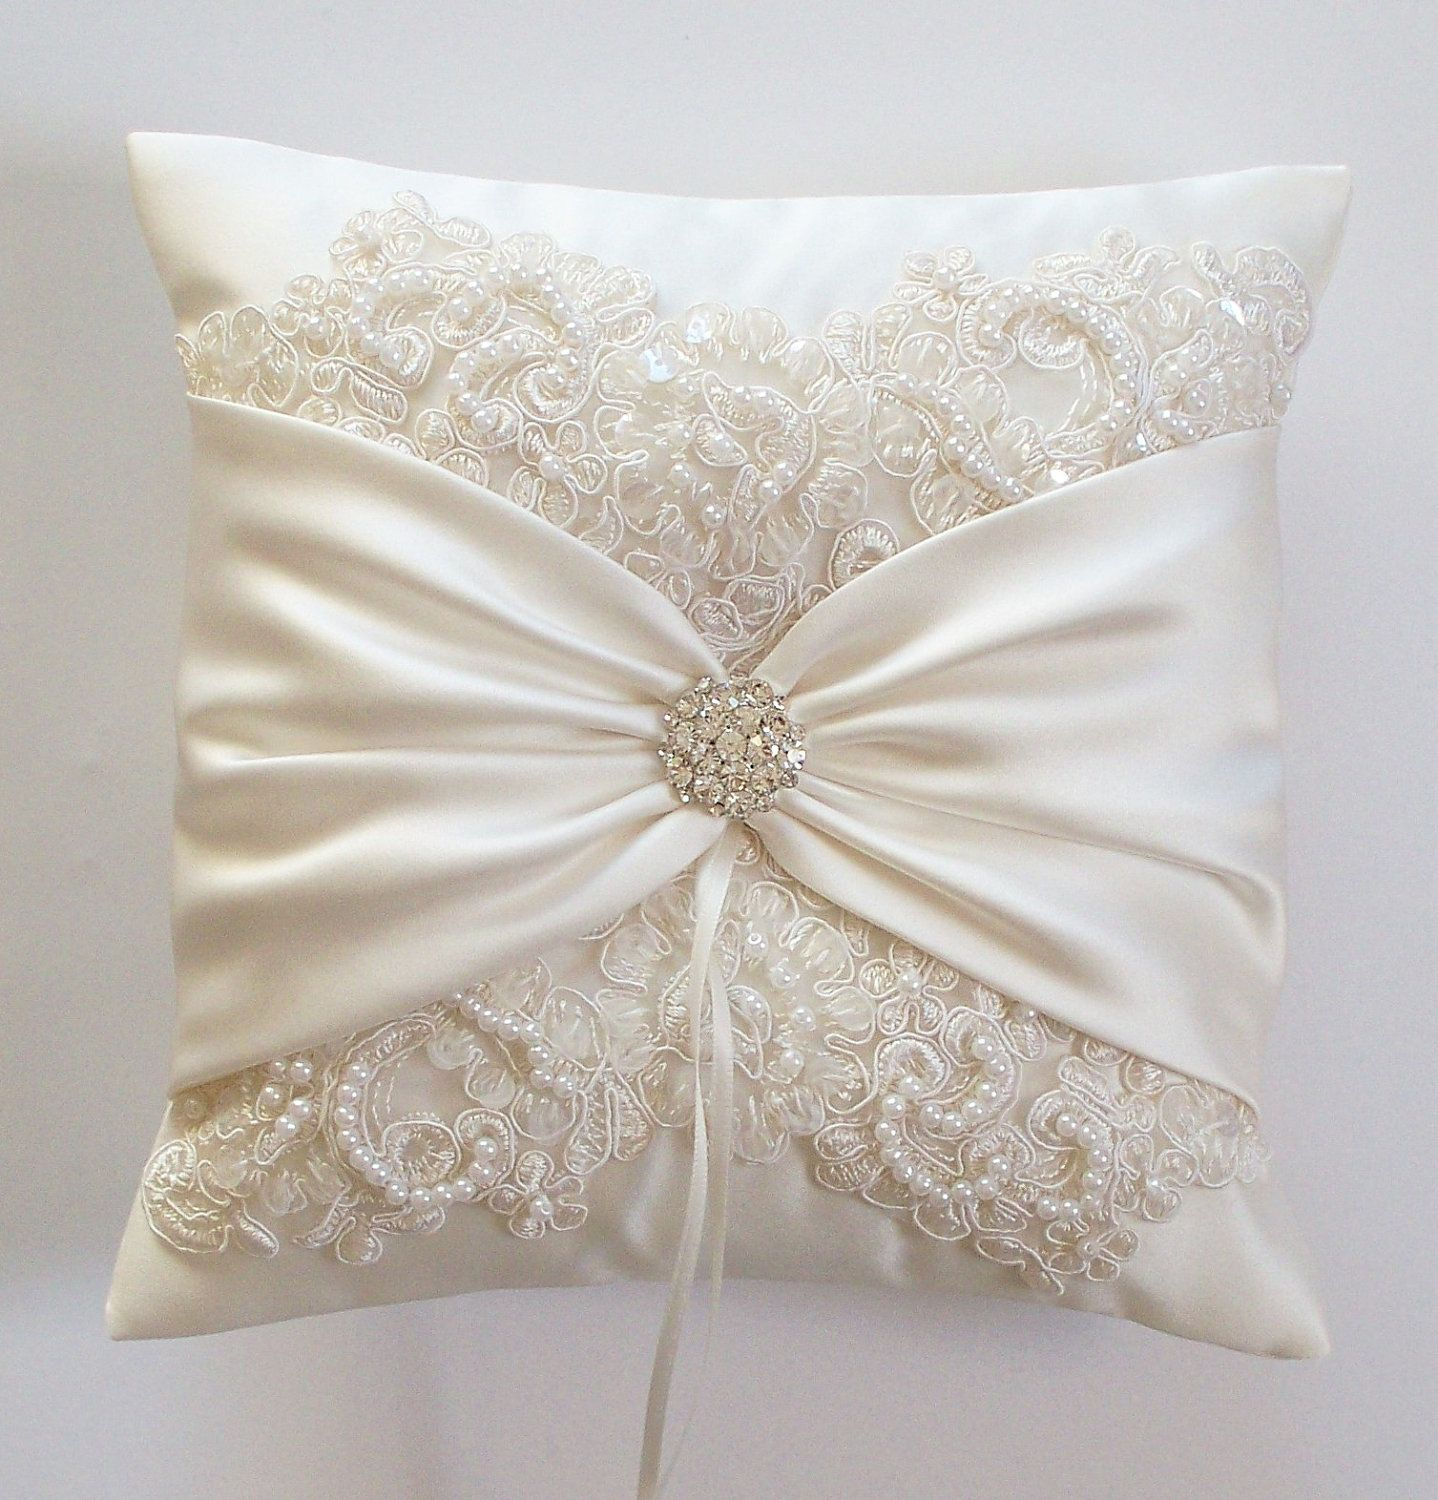 Ring Pillow Wedding Uk: Wedding Ring Pillow with Beaded Alencon Lace  Ivory Satin Sash    ,